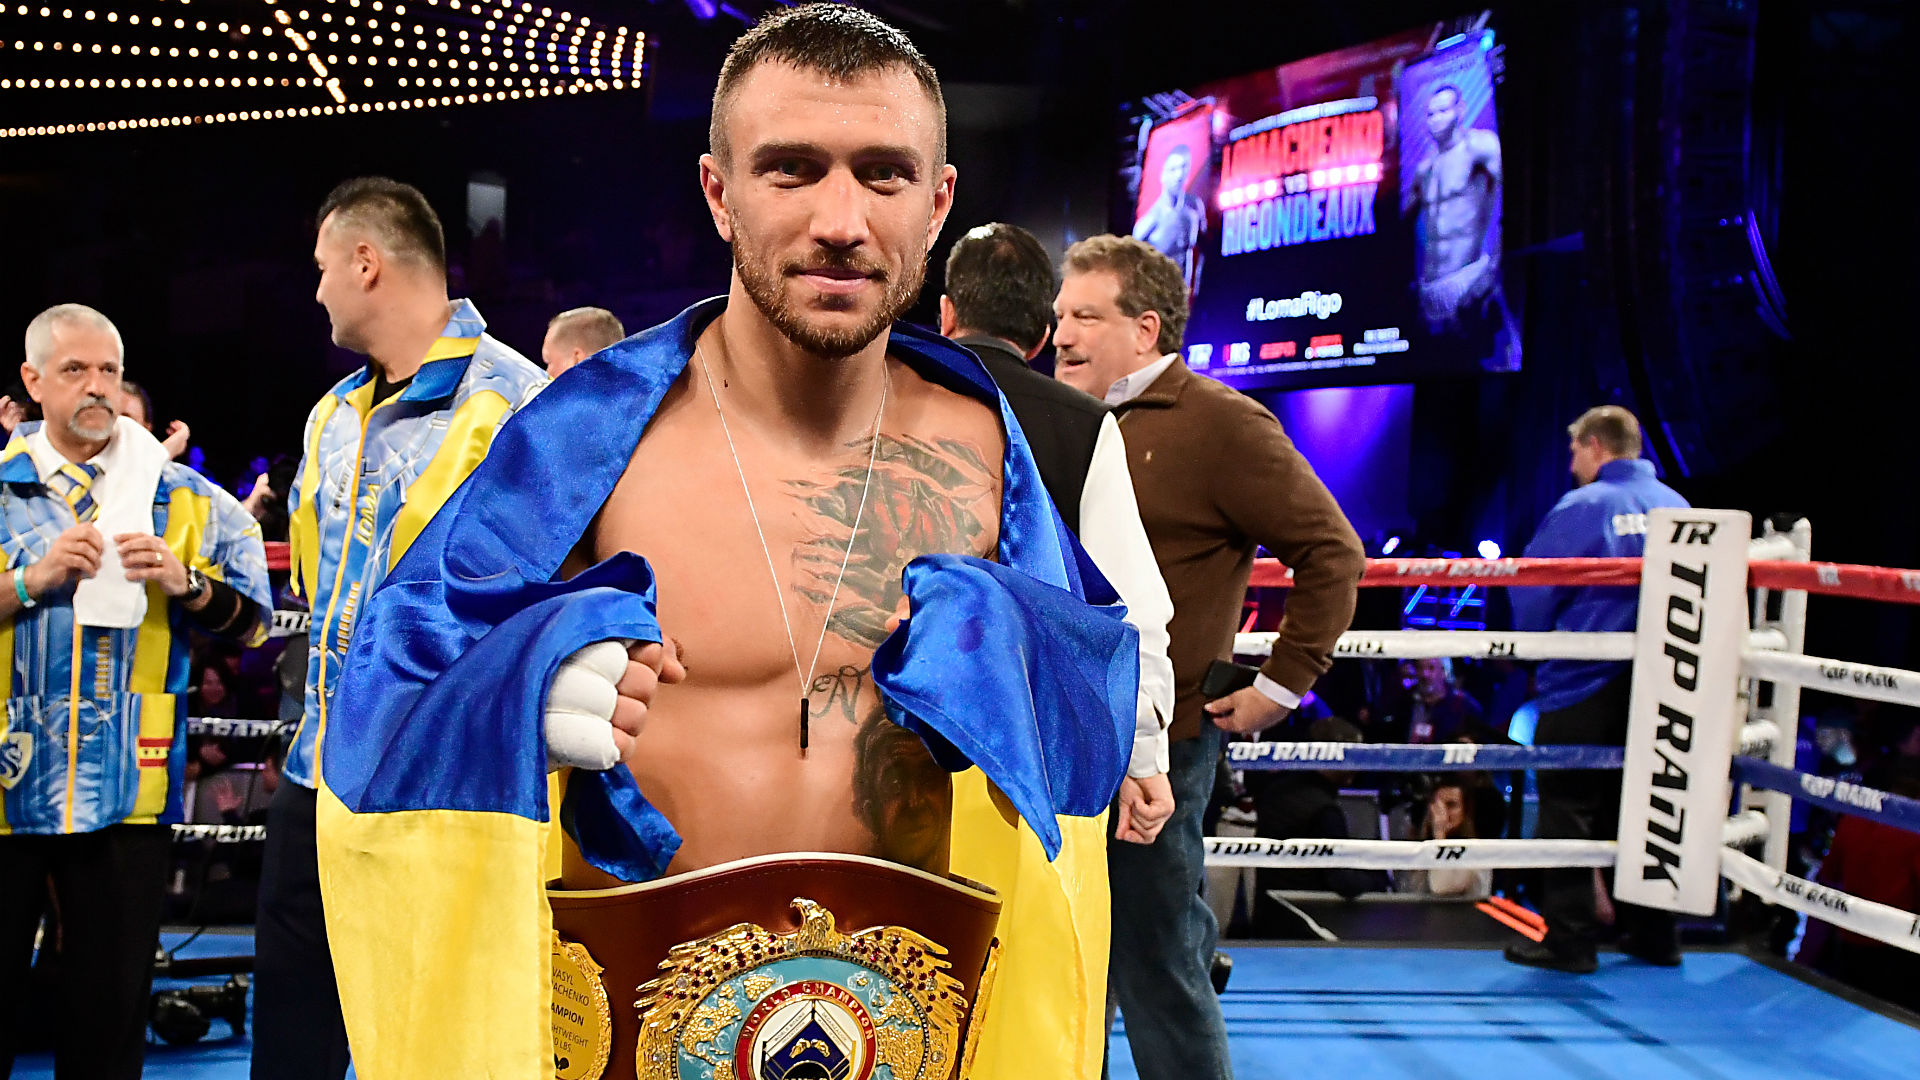 Vasiliy Lomachenko vs. Jose Pedraza: Fight time, how to watch and live stream